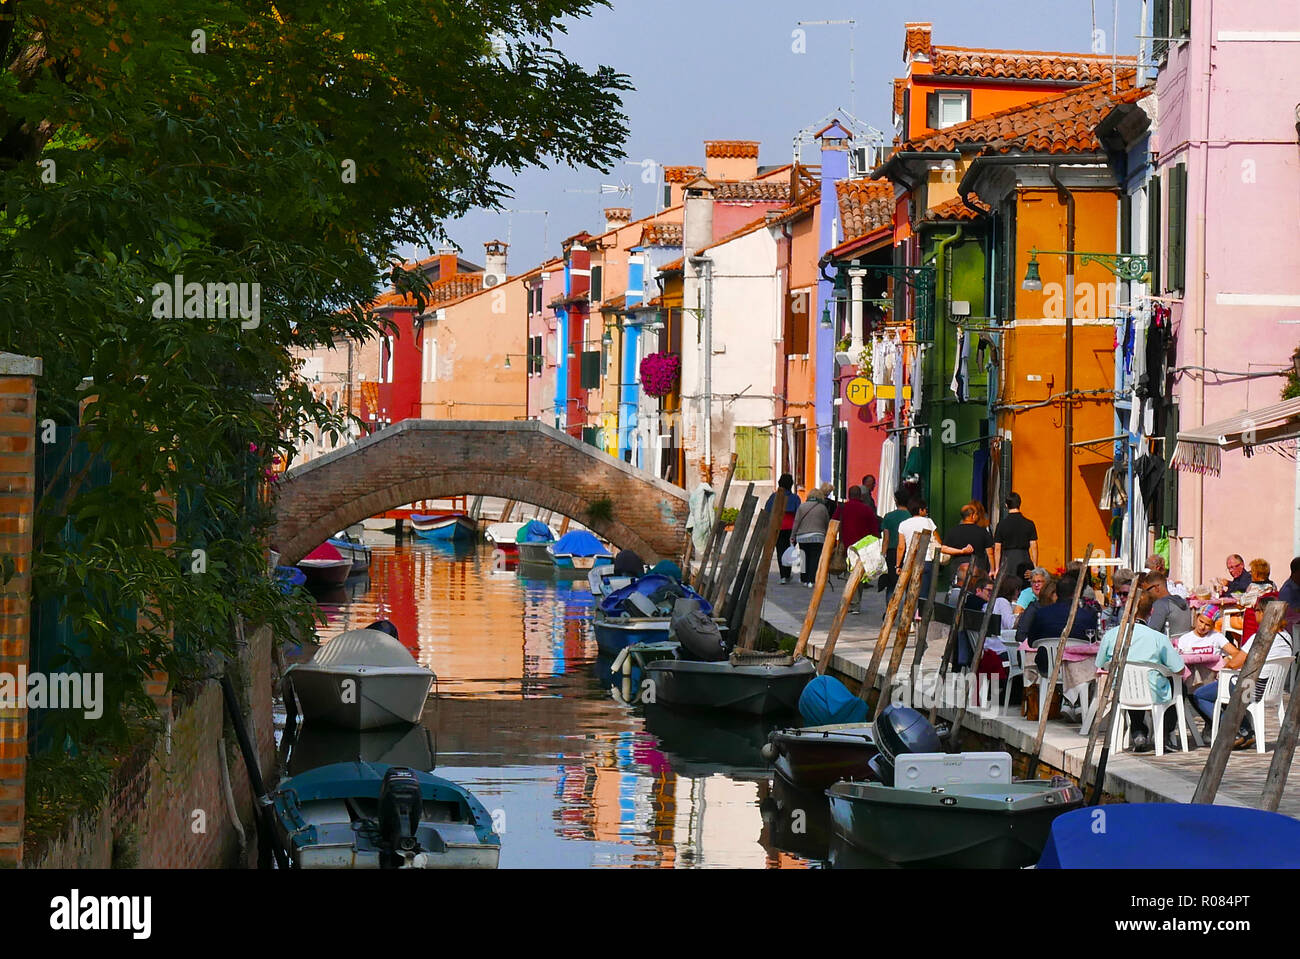 Canal view of the brightly painted houses on the island of Burano in the Venetian Lagoon Italy Stock Photo